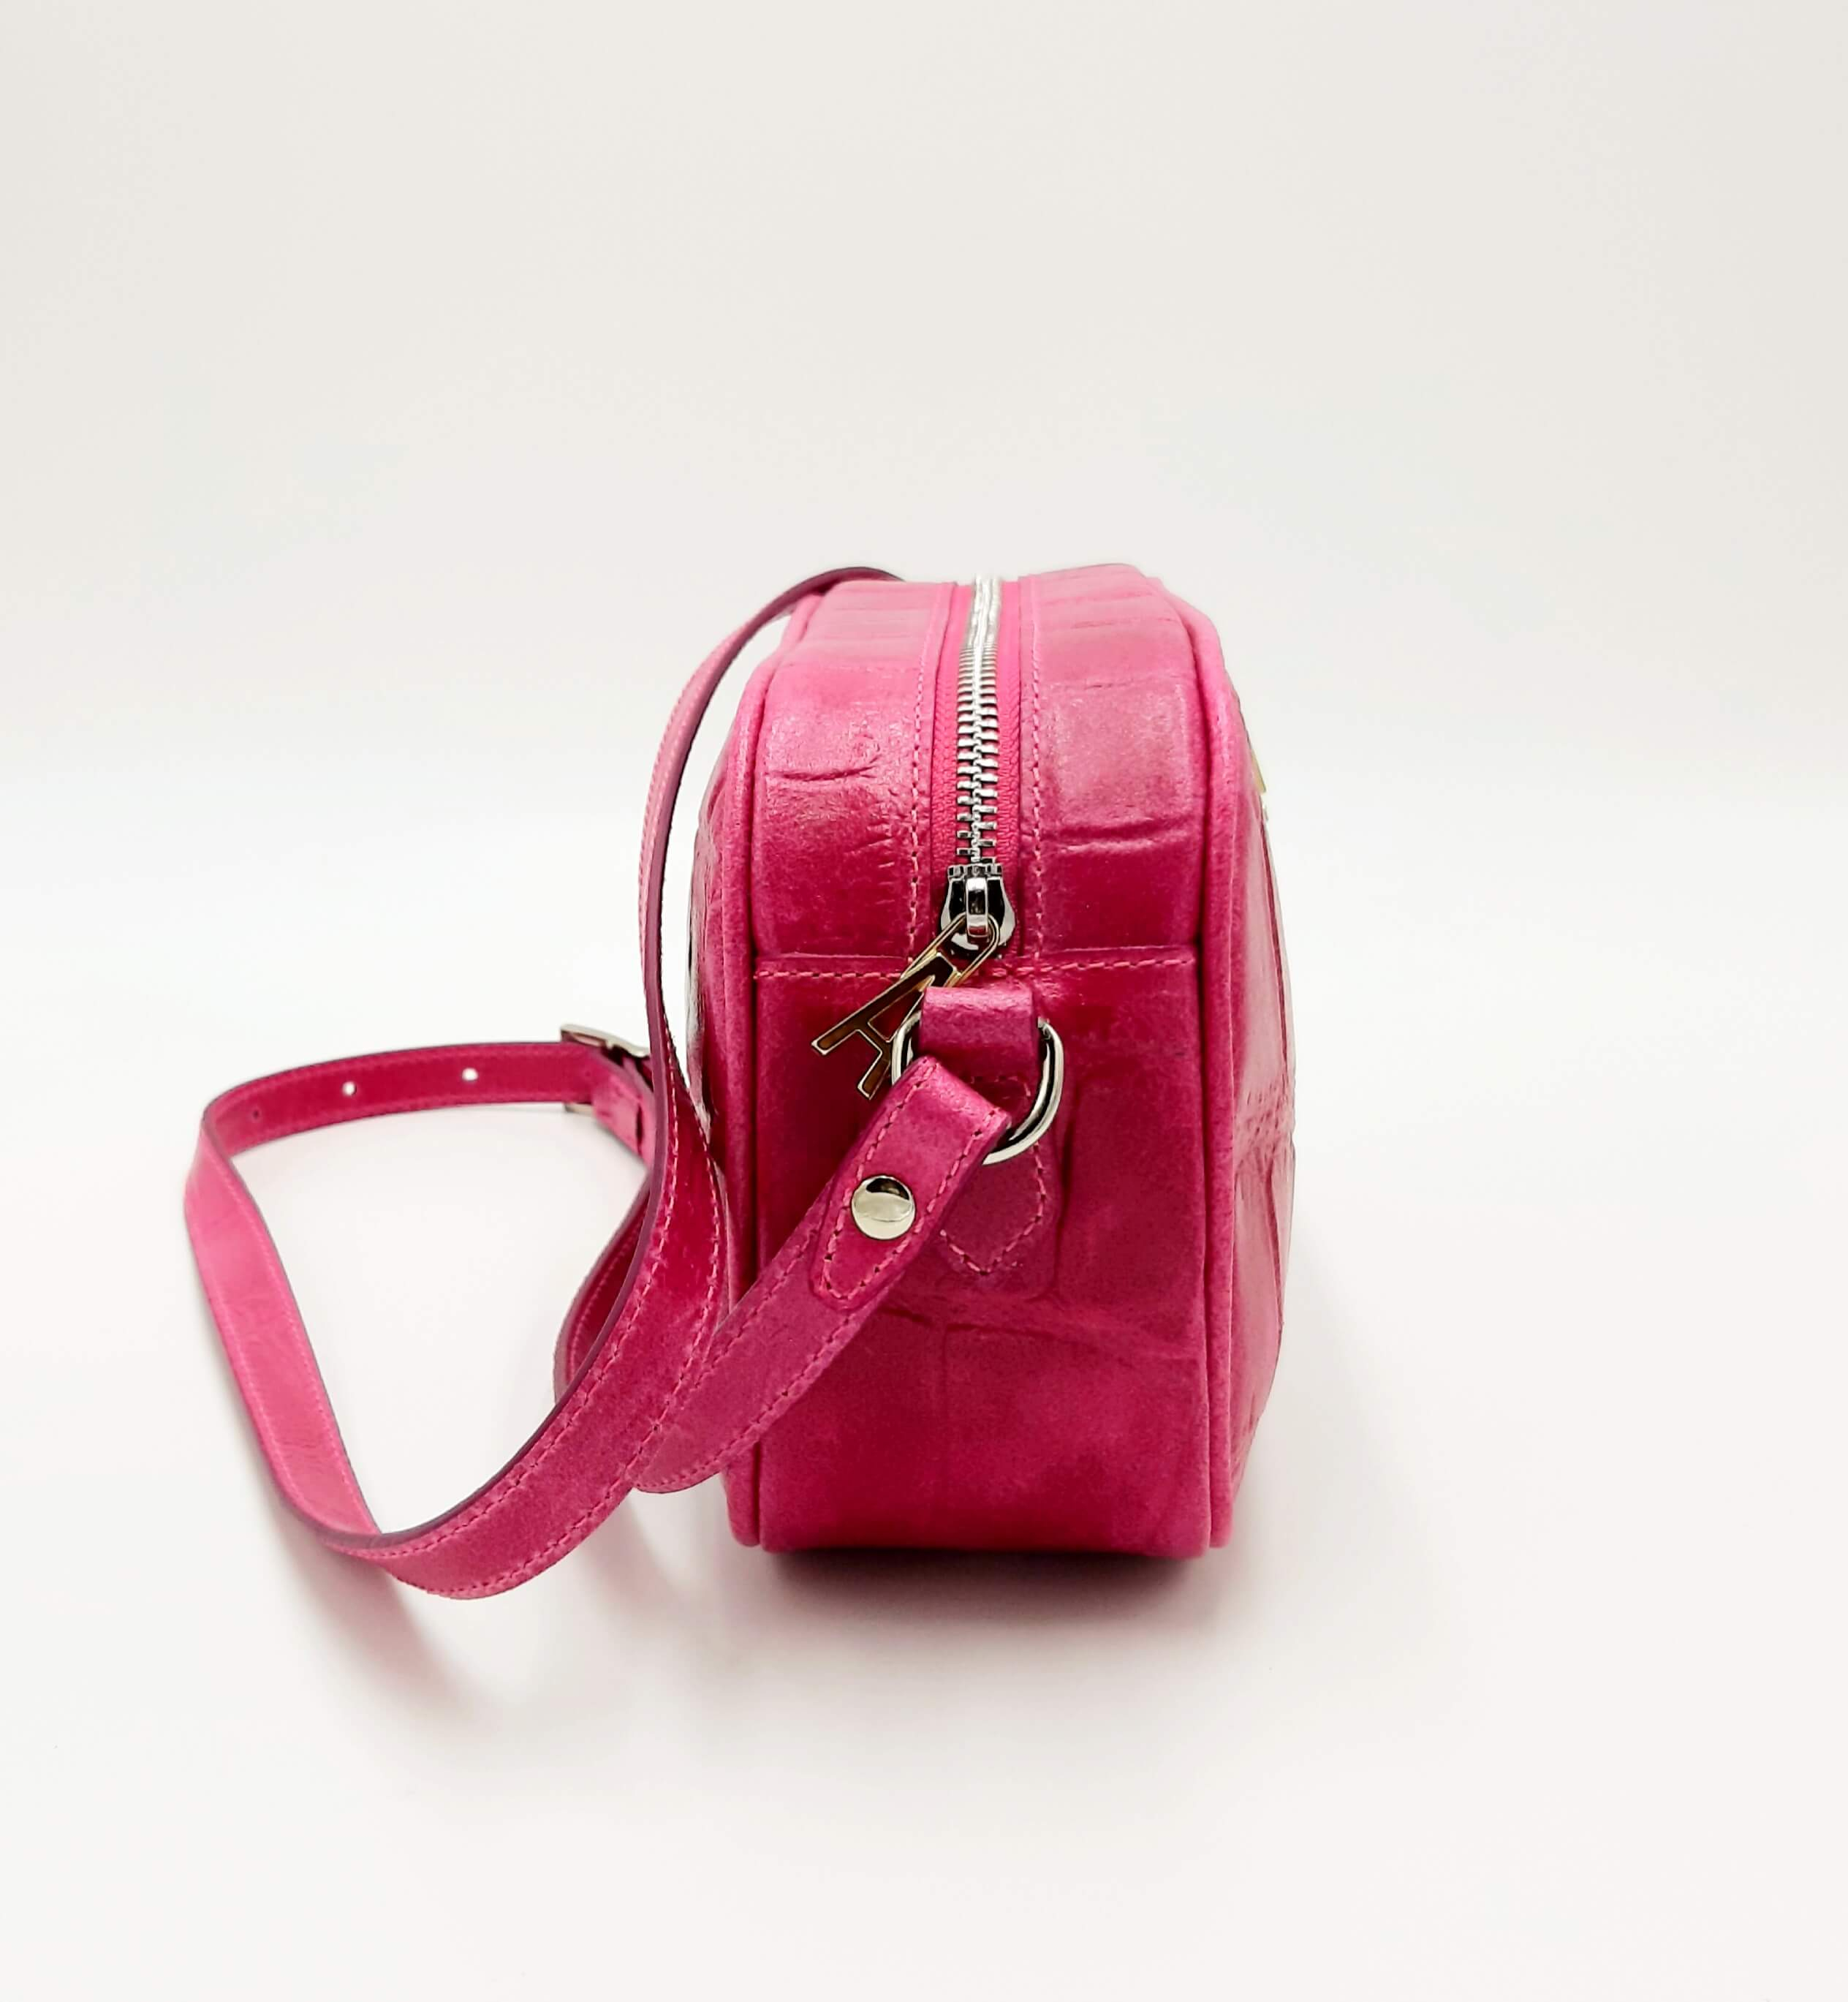 Tracolla Lalla bag rosa Aniye By.